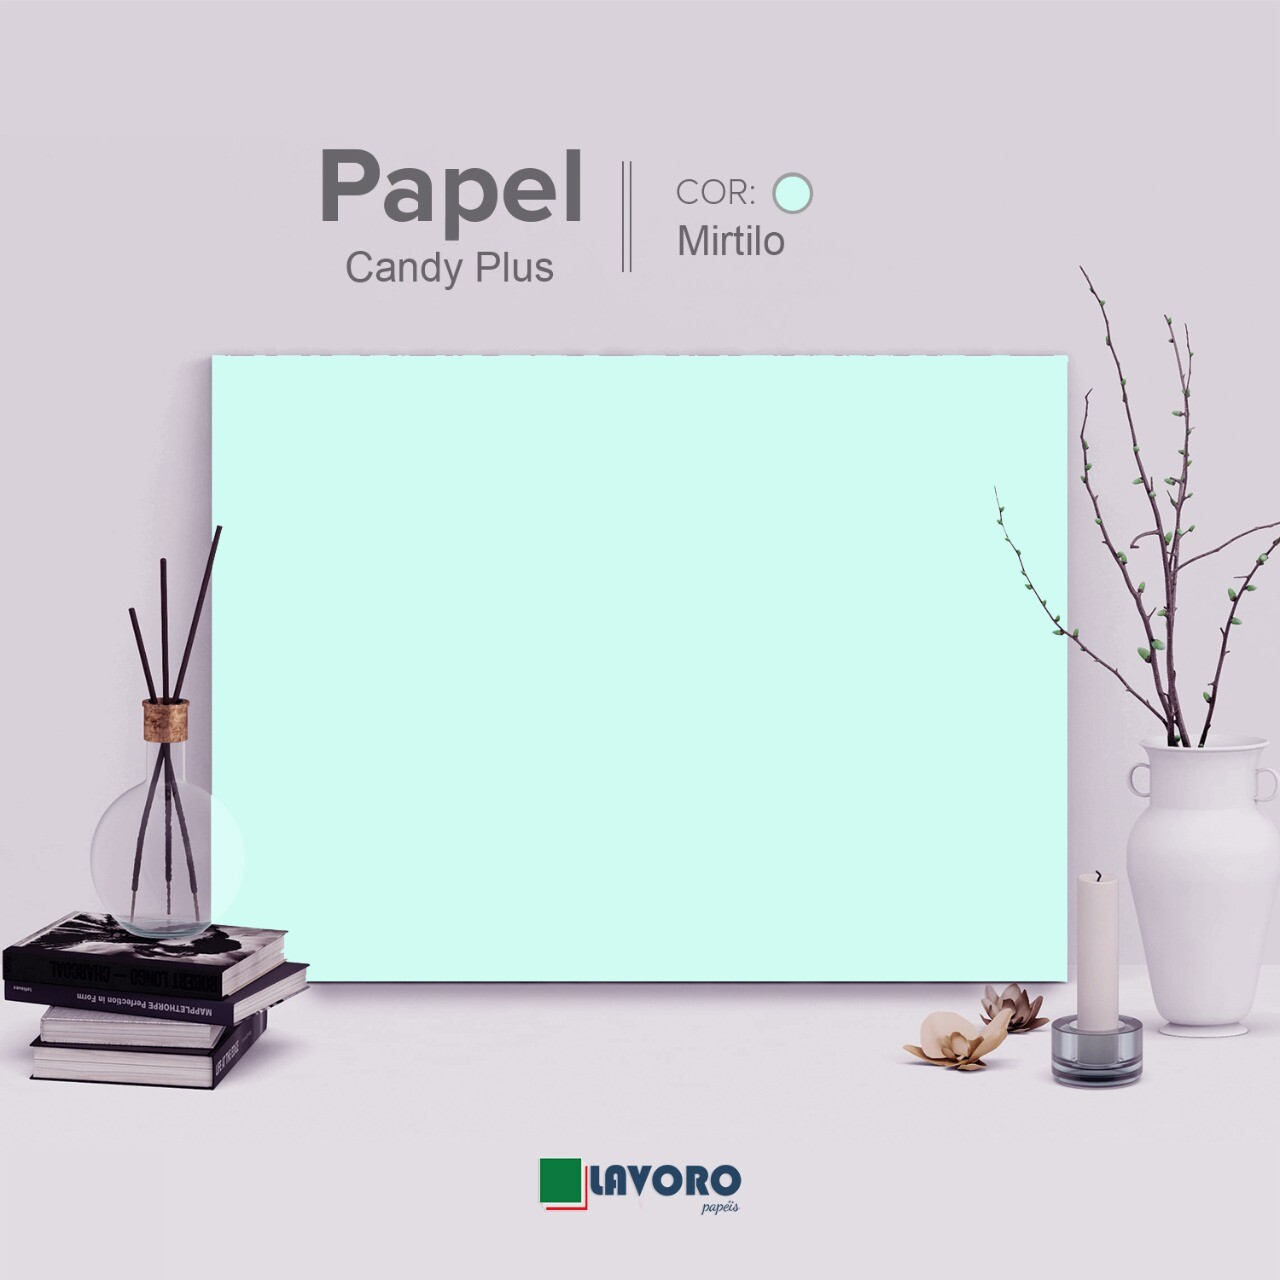 Papel Candy Plus 180g 30x60 - Mirtilo - 21 Folhas